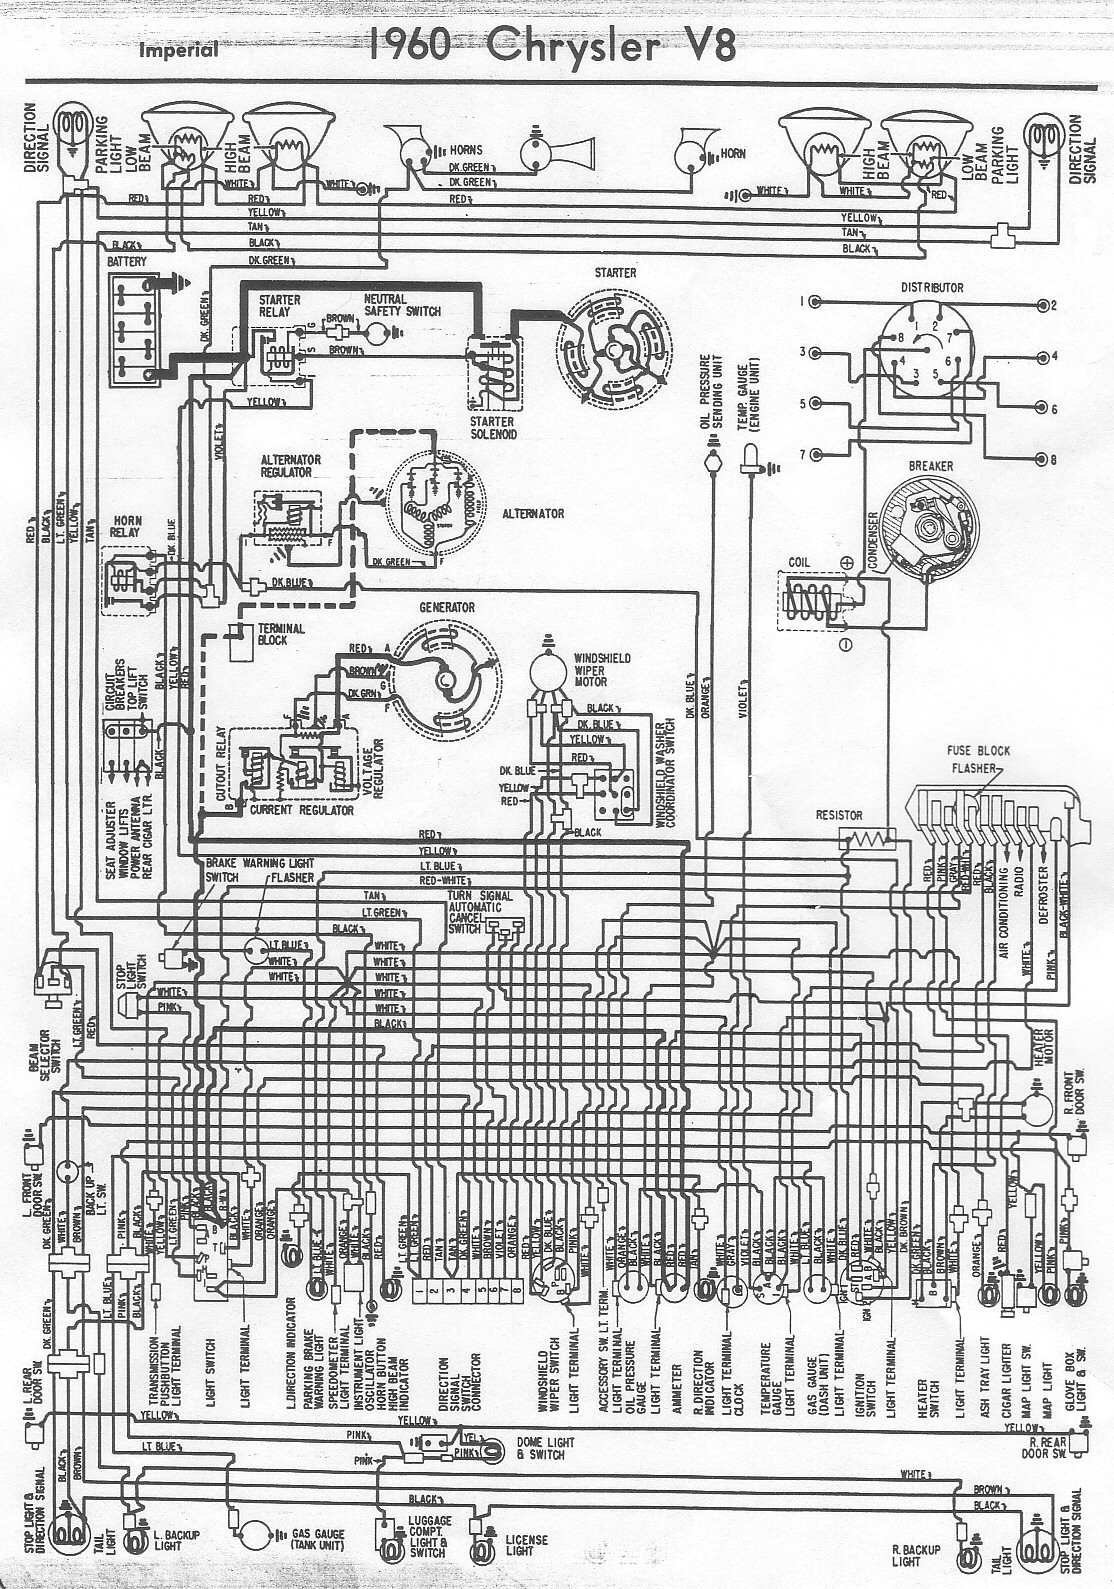 Free Chrysler Radio Wiring Diagram from 4.bp.blogspot.com